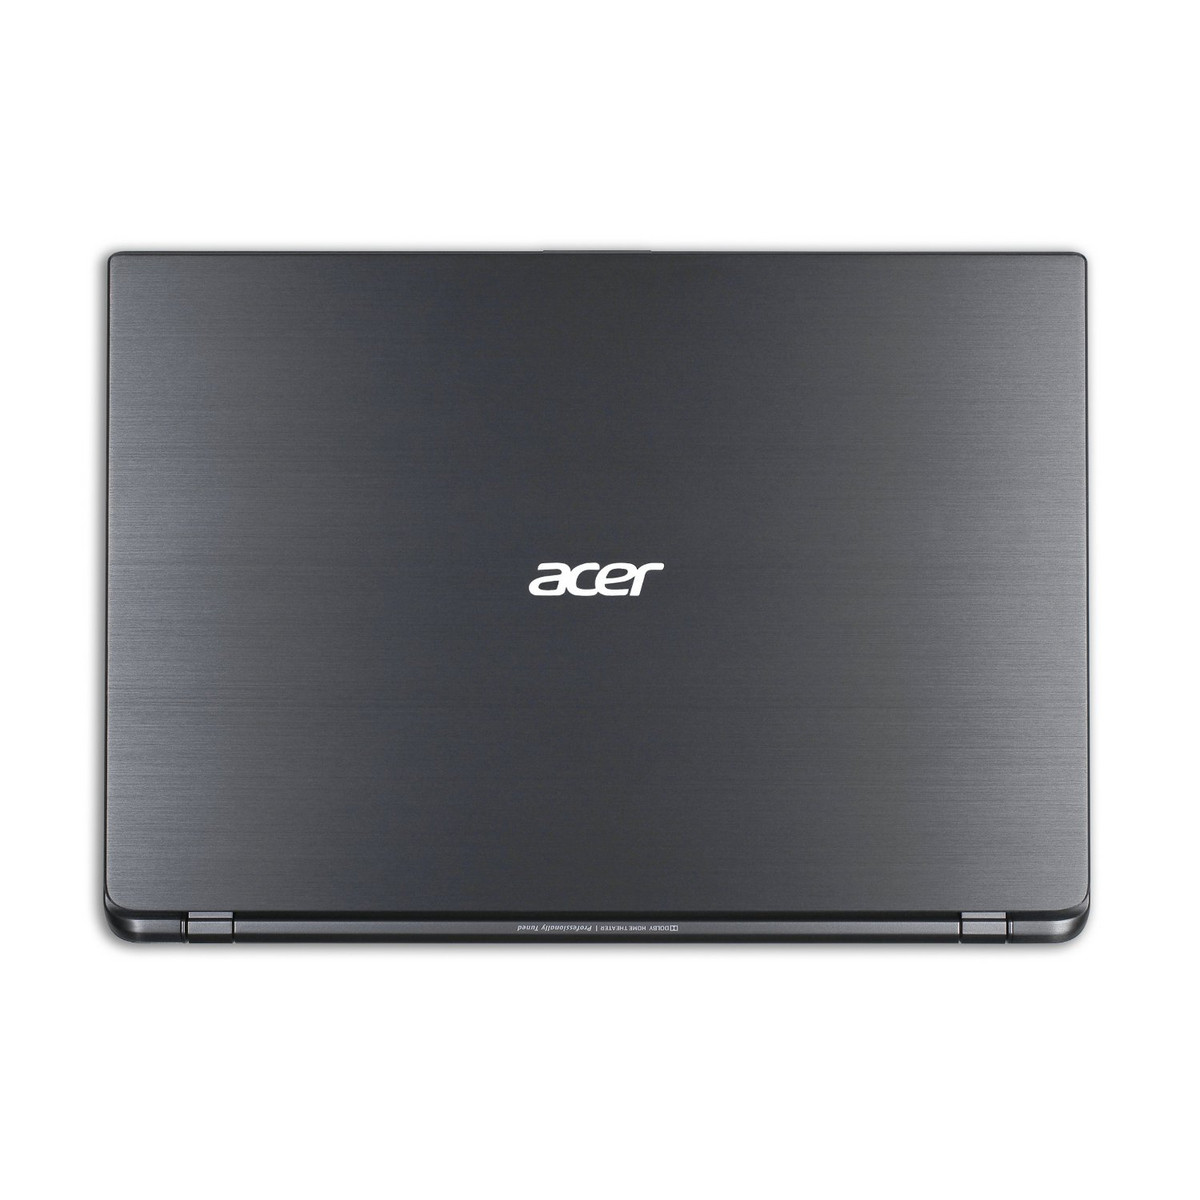 Acer Aspire M5-581T Realtek HD Audio Linux